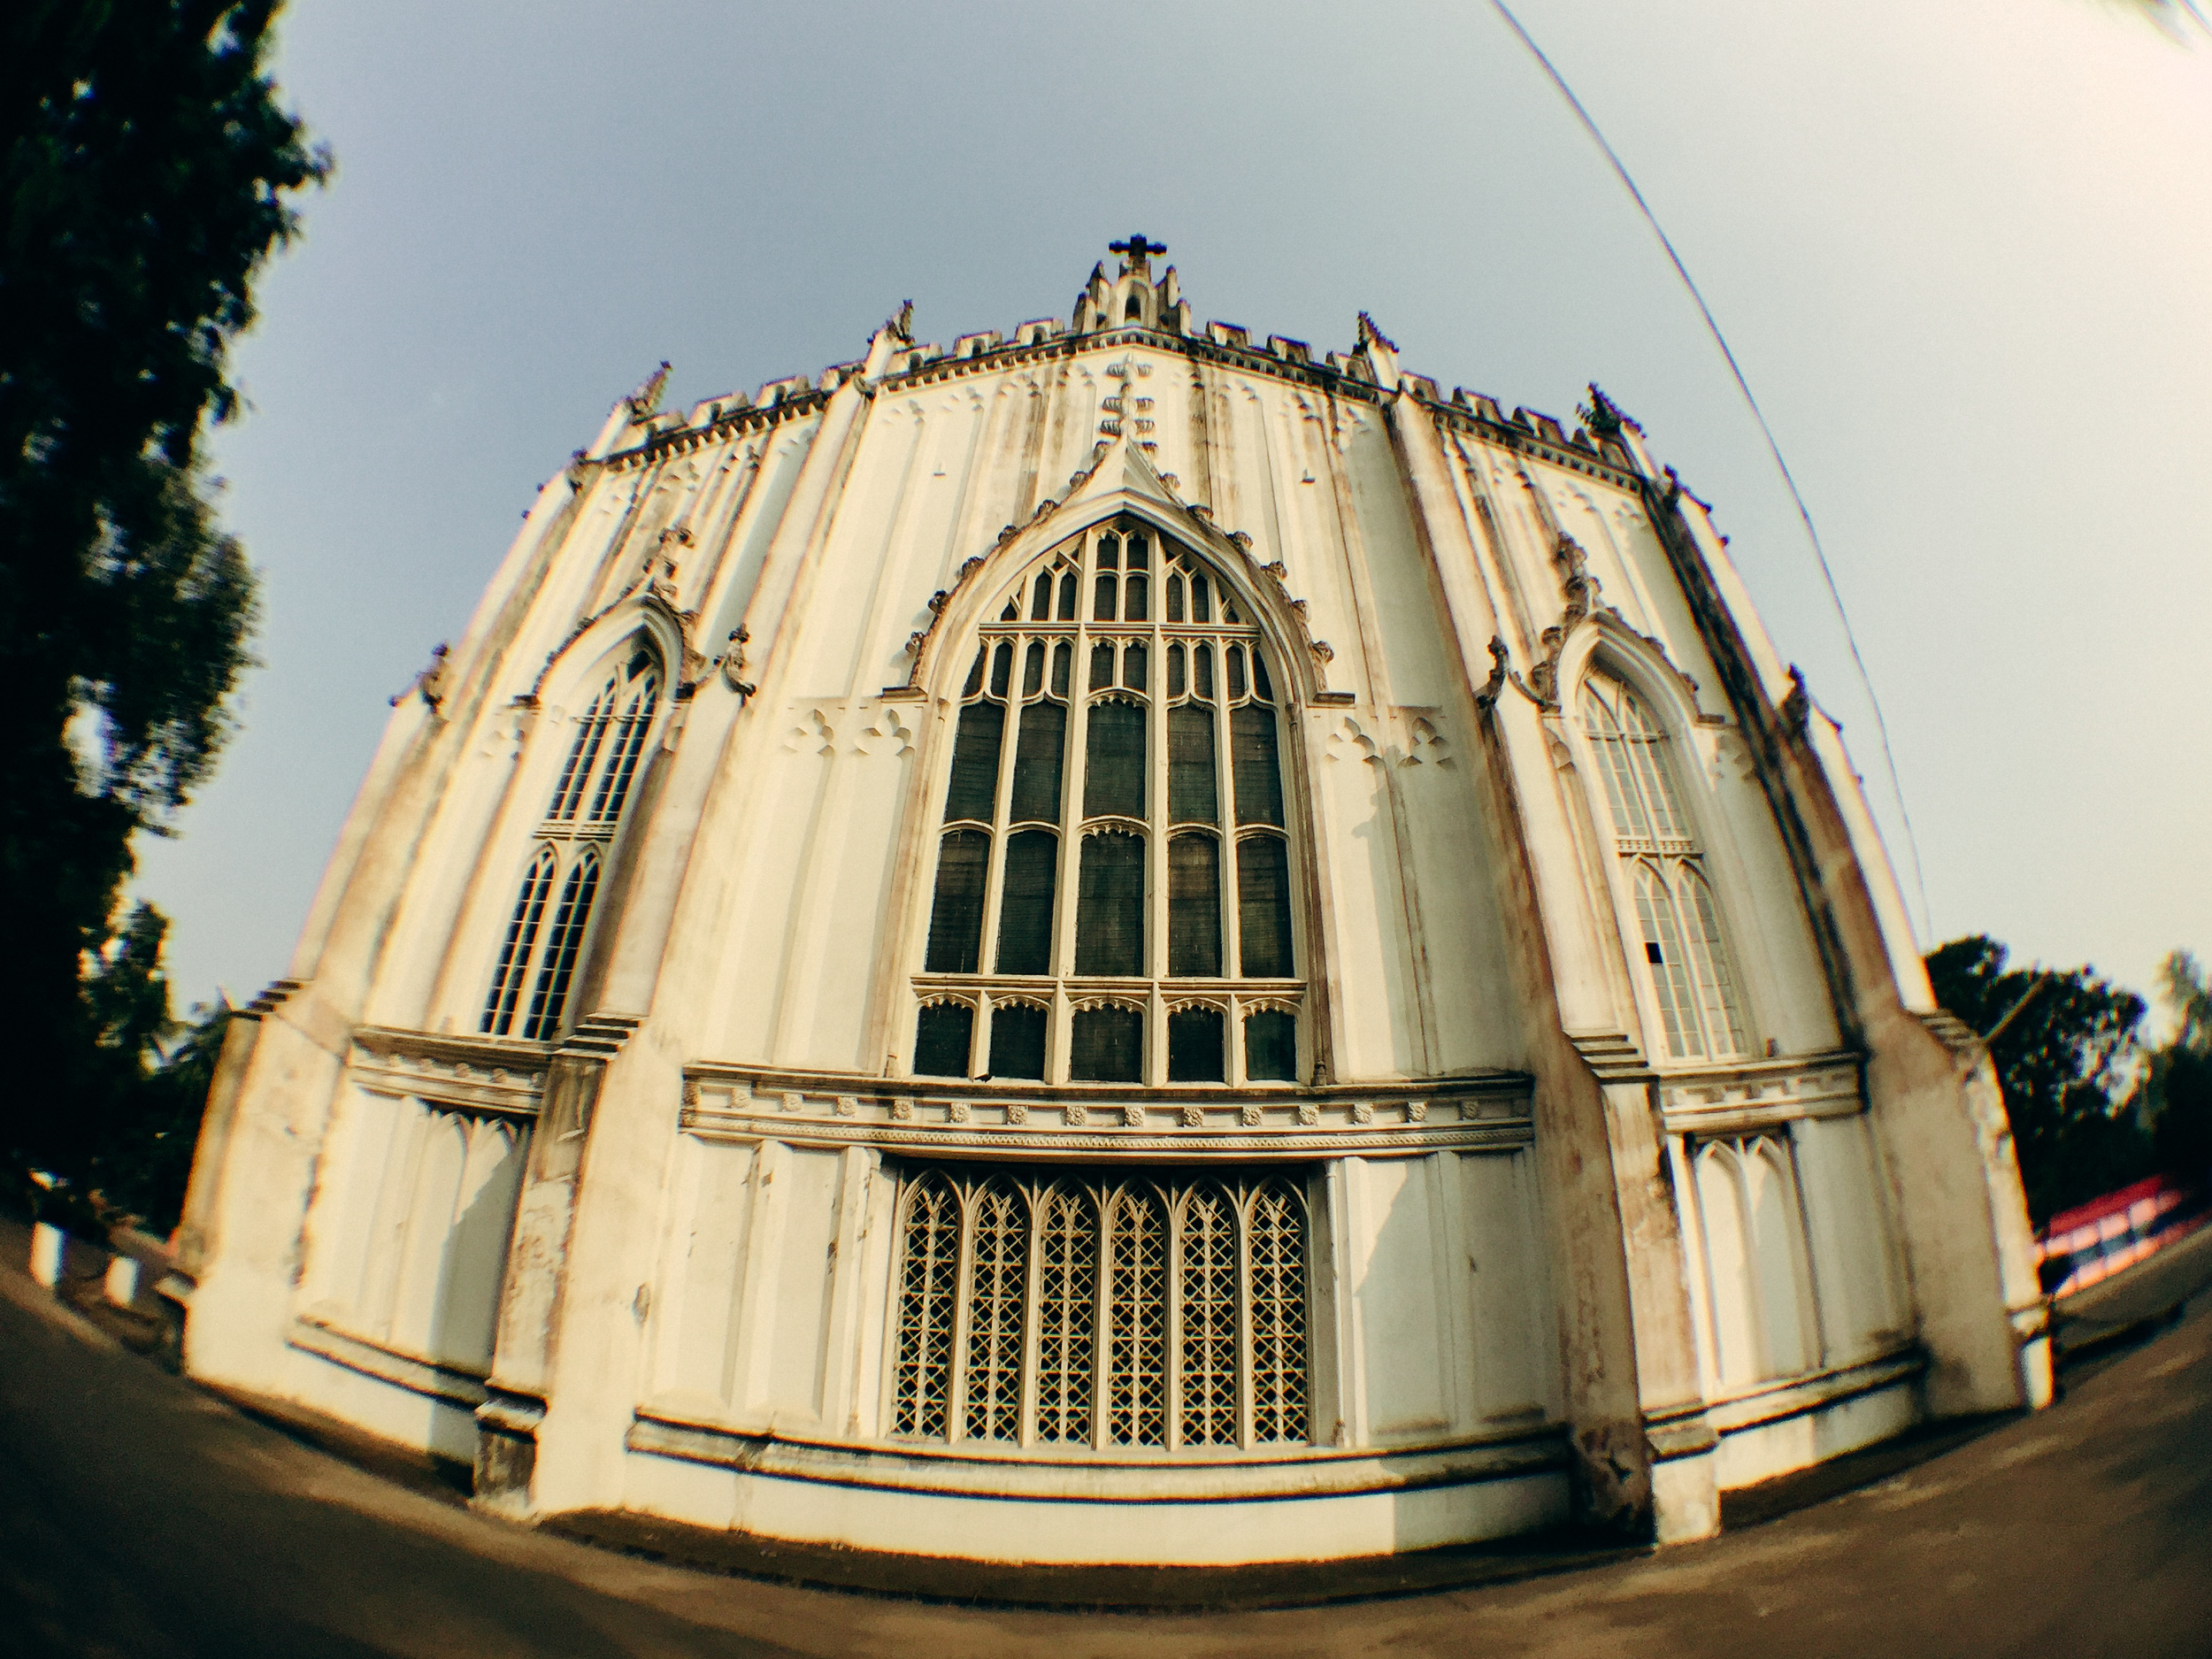 The beautiful St. Paul's Cathedral in Kolkata. Shot on iPhone 6 with the IMVIO Fisheye lens.